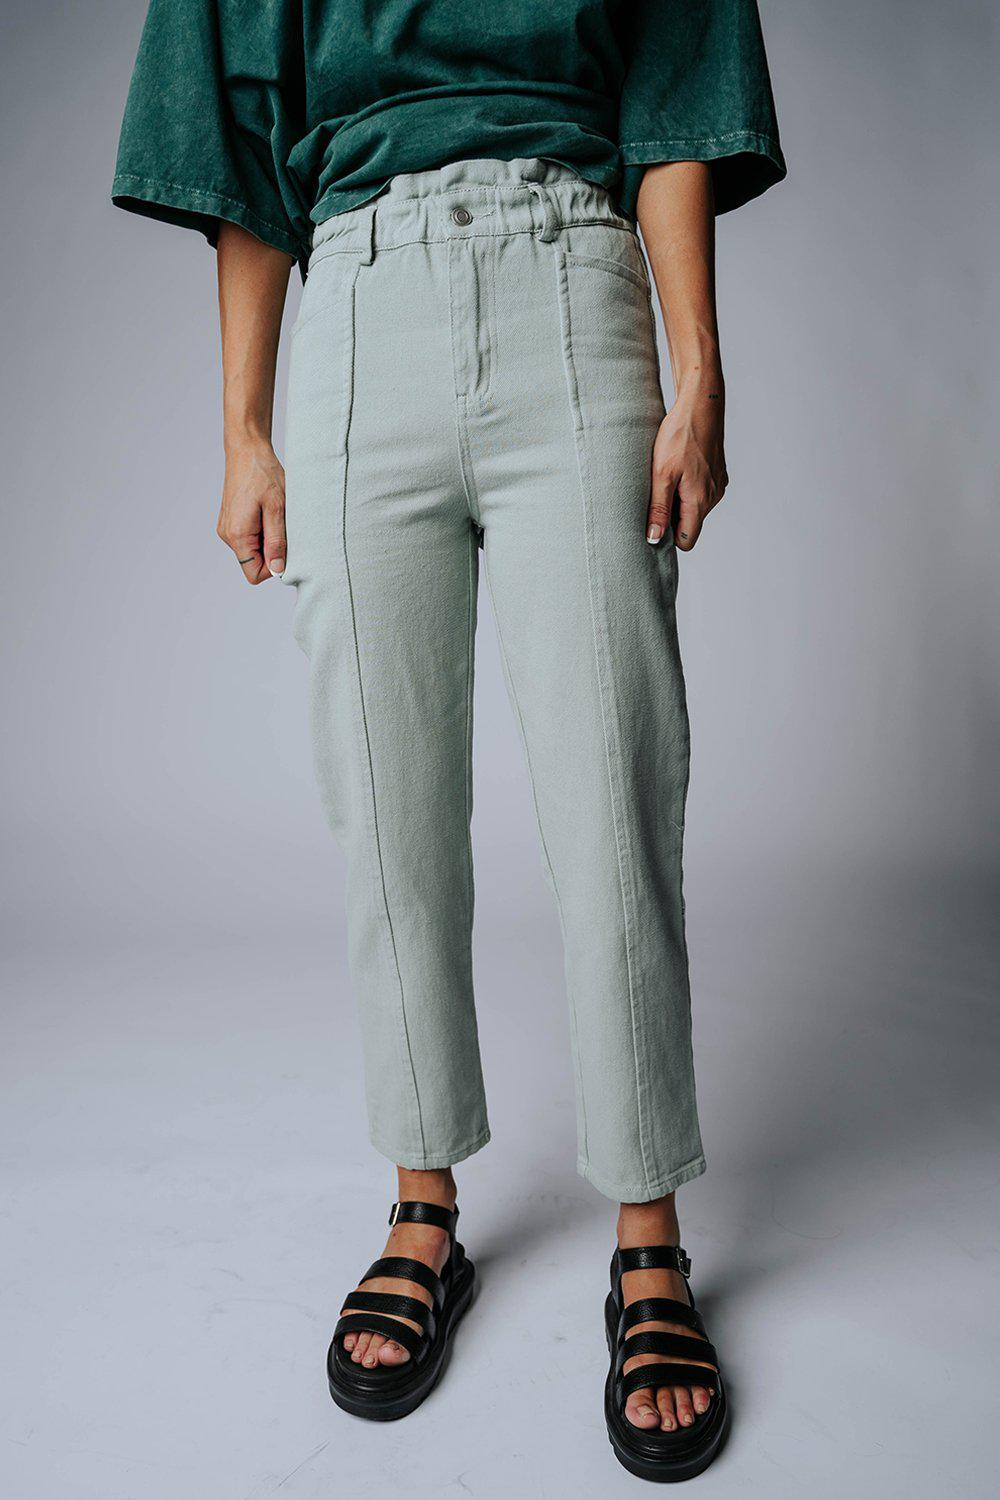 best_seller, Walkin' Out the Door Pants - FINAL SALE, Bottom, women's clothing, dresses, skirts, coats, jackets, shoes, boots, tops, tee shirts, jeans, free people, levi's, rollas, jumpsuits, bottoms, tops, sweaters, pullovers, pants, shorts, sweats,.